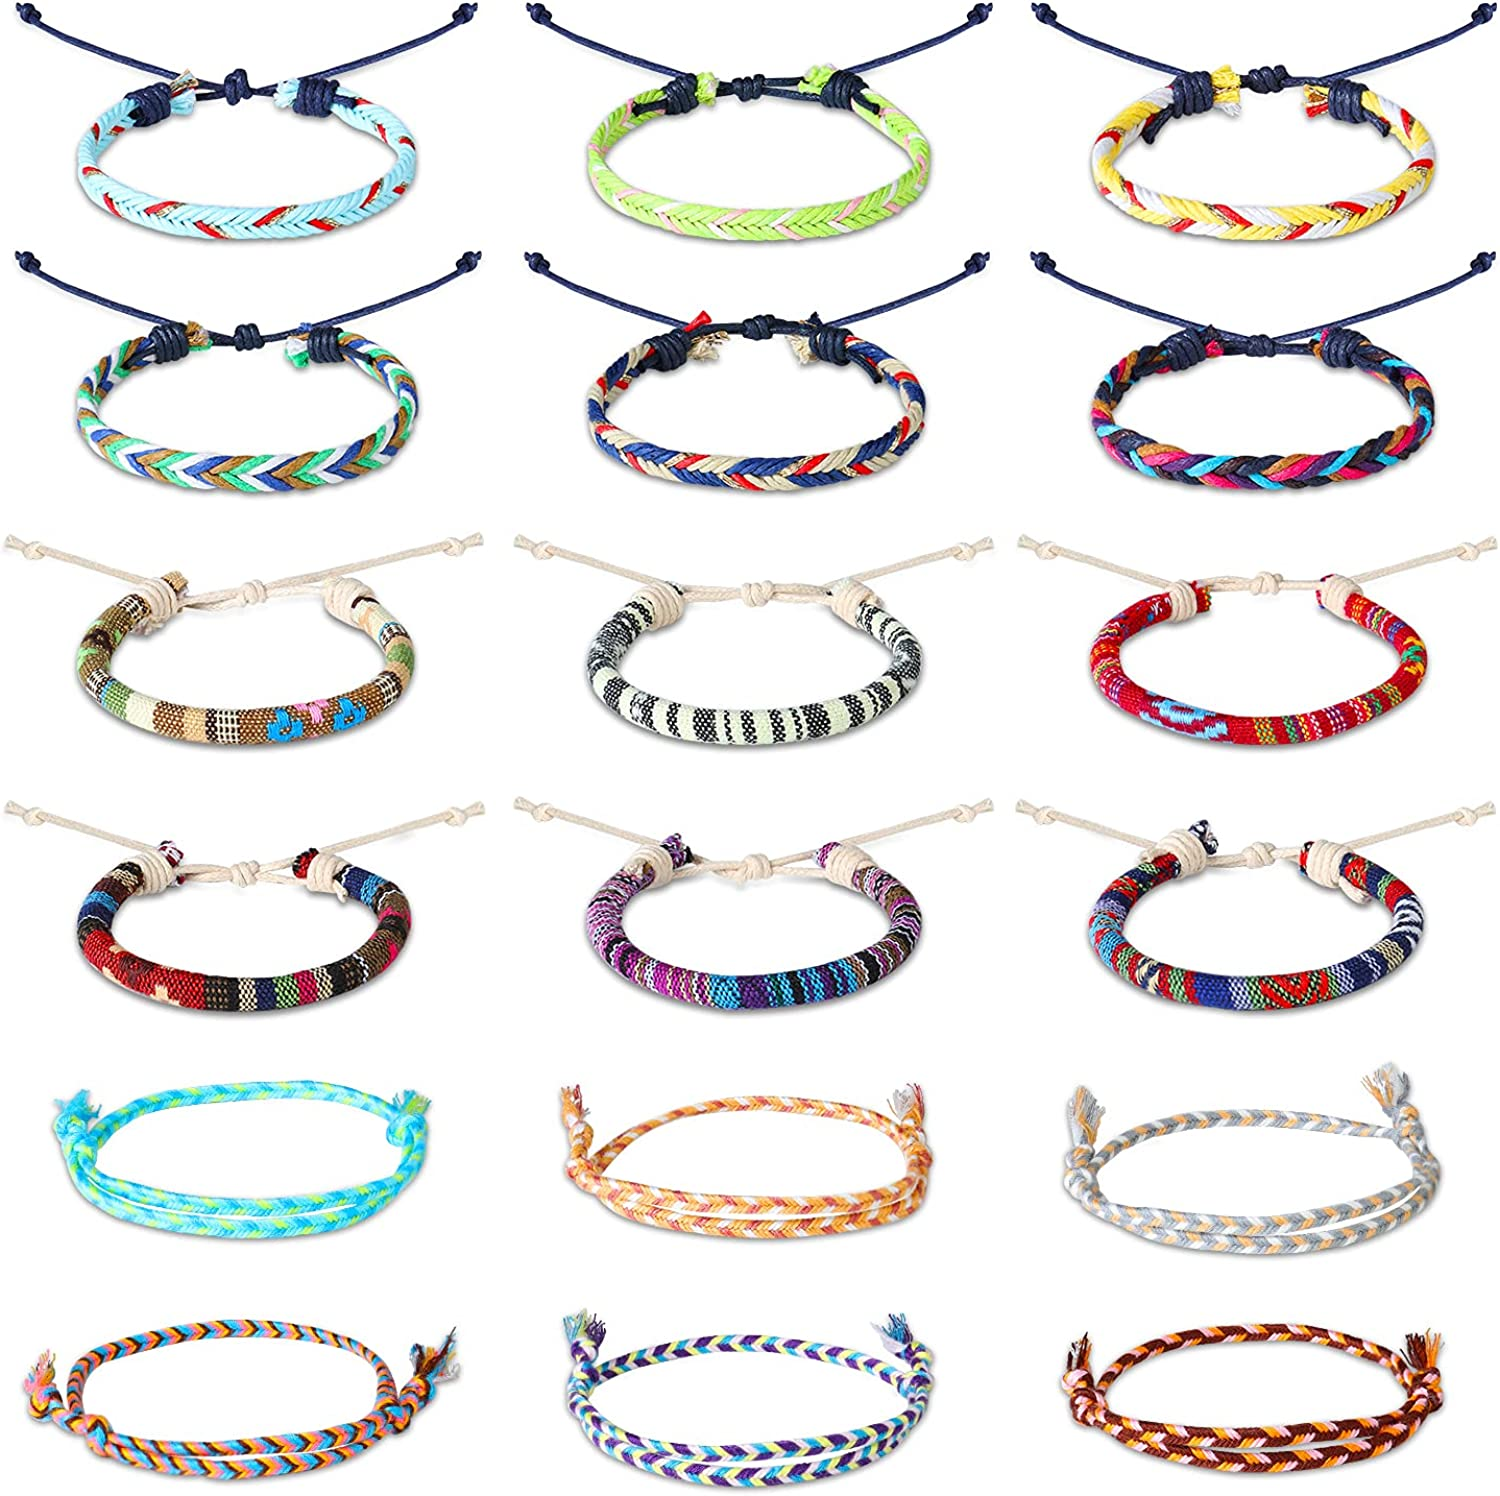 18 Pieces Adjustable Max 86% OFF Braided Surfer Topics on TV Thin Bracelets Boho Ank Rope